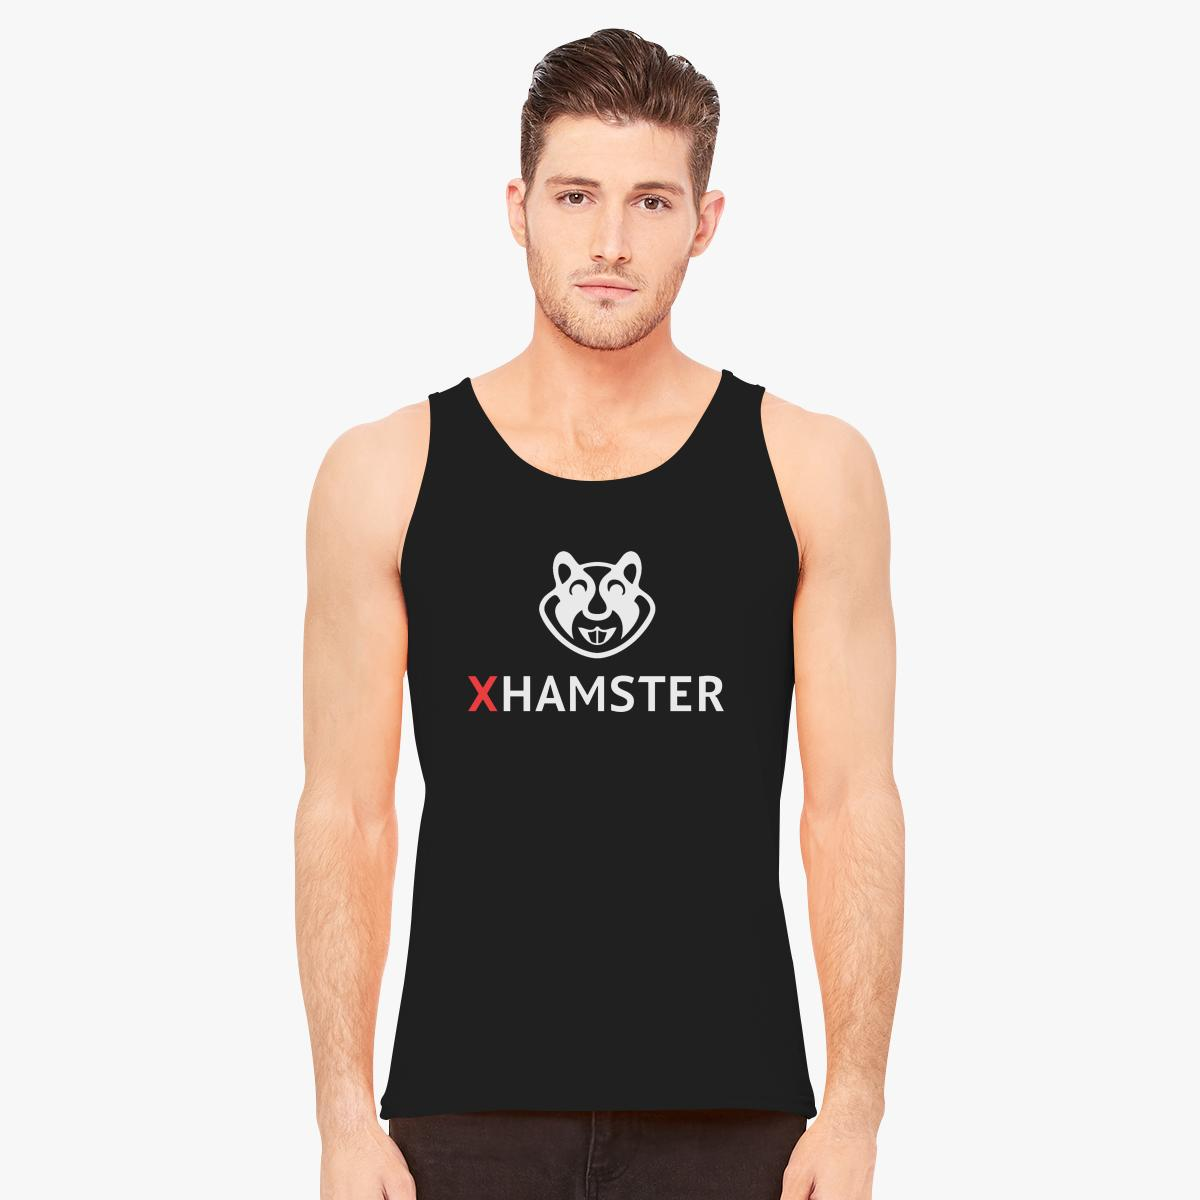 xhamster men's tank top | customon